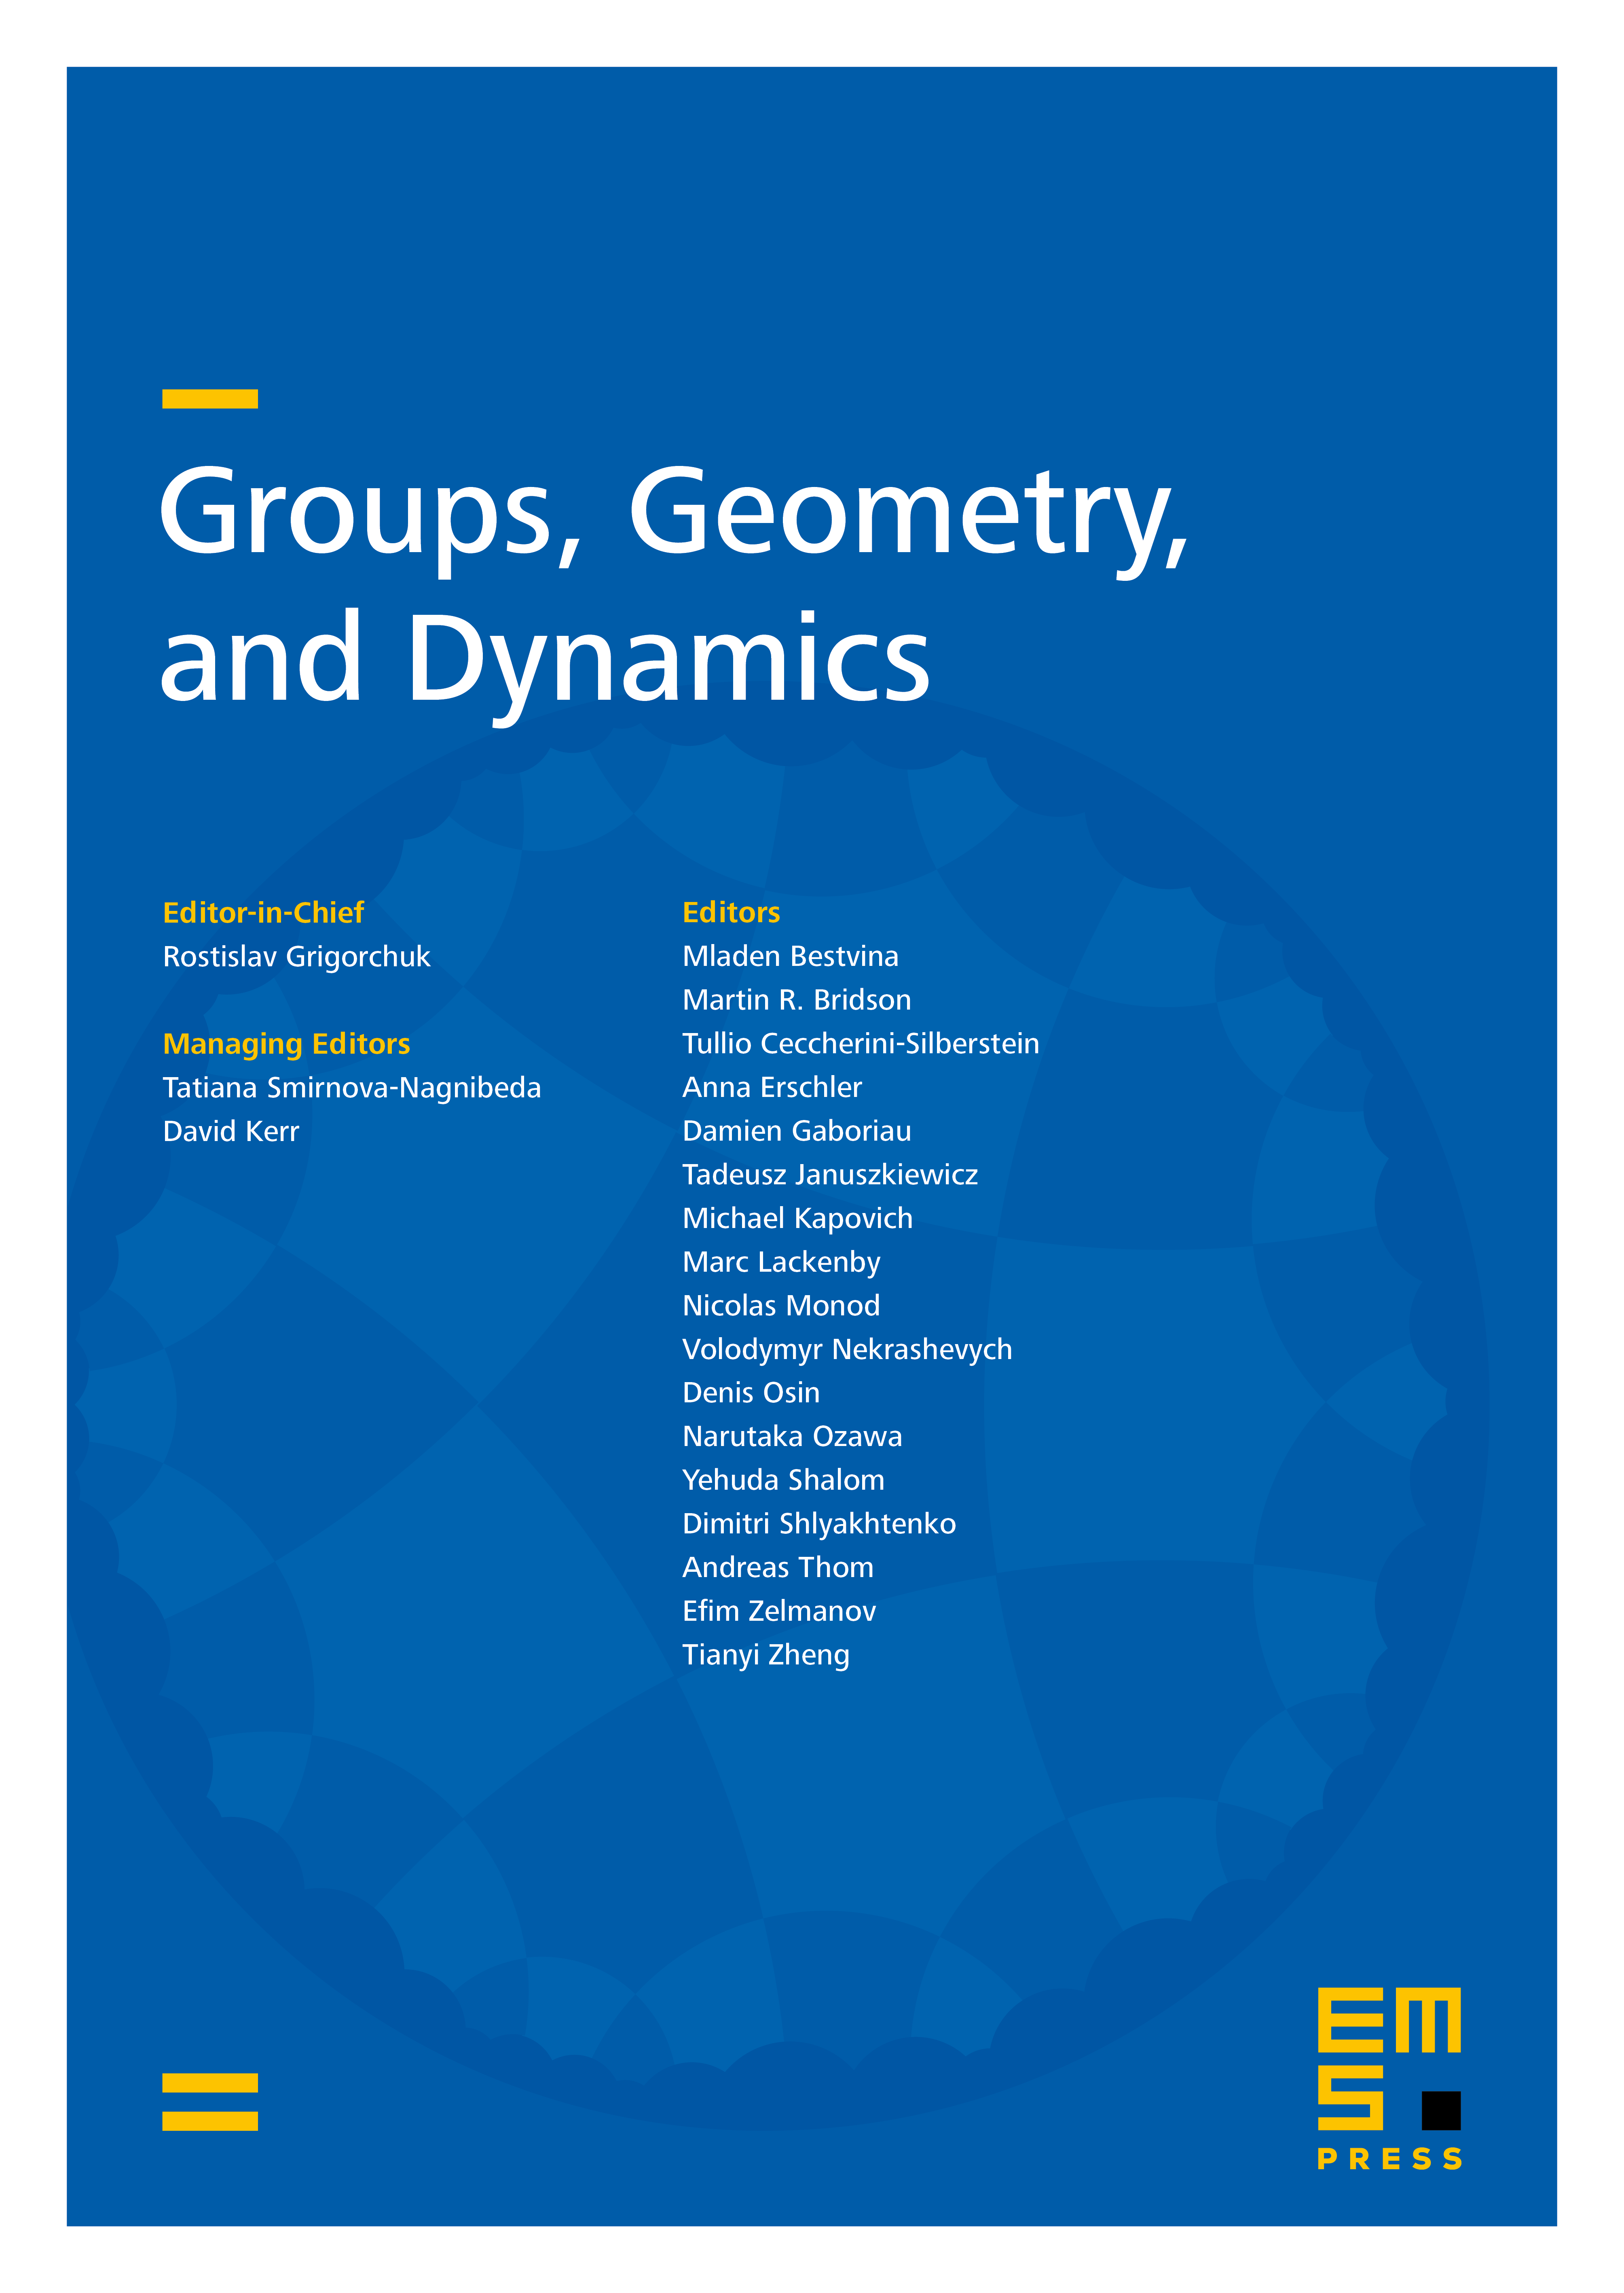 Groups, Geometry, and Dynamics cover